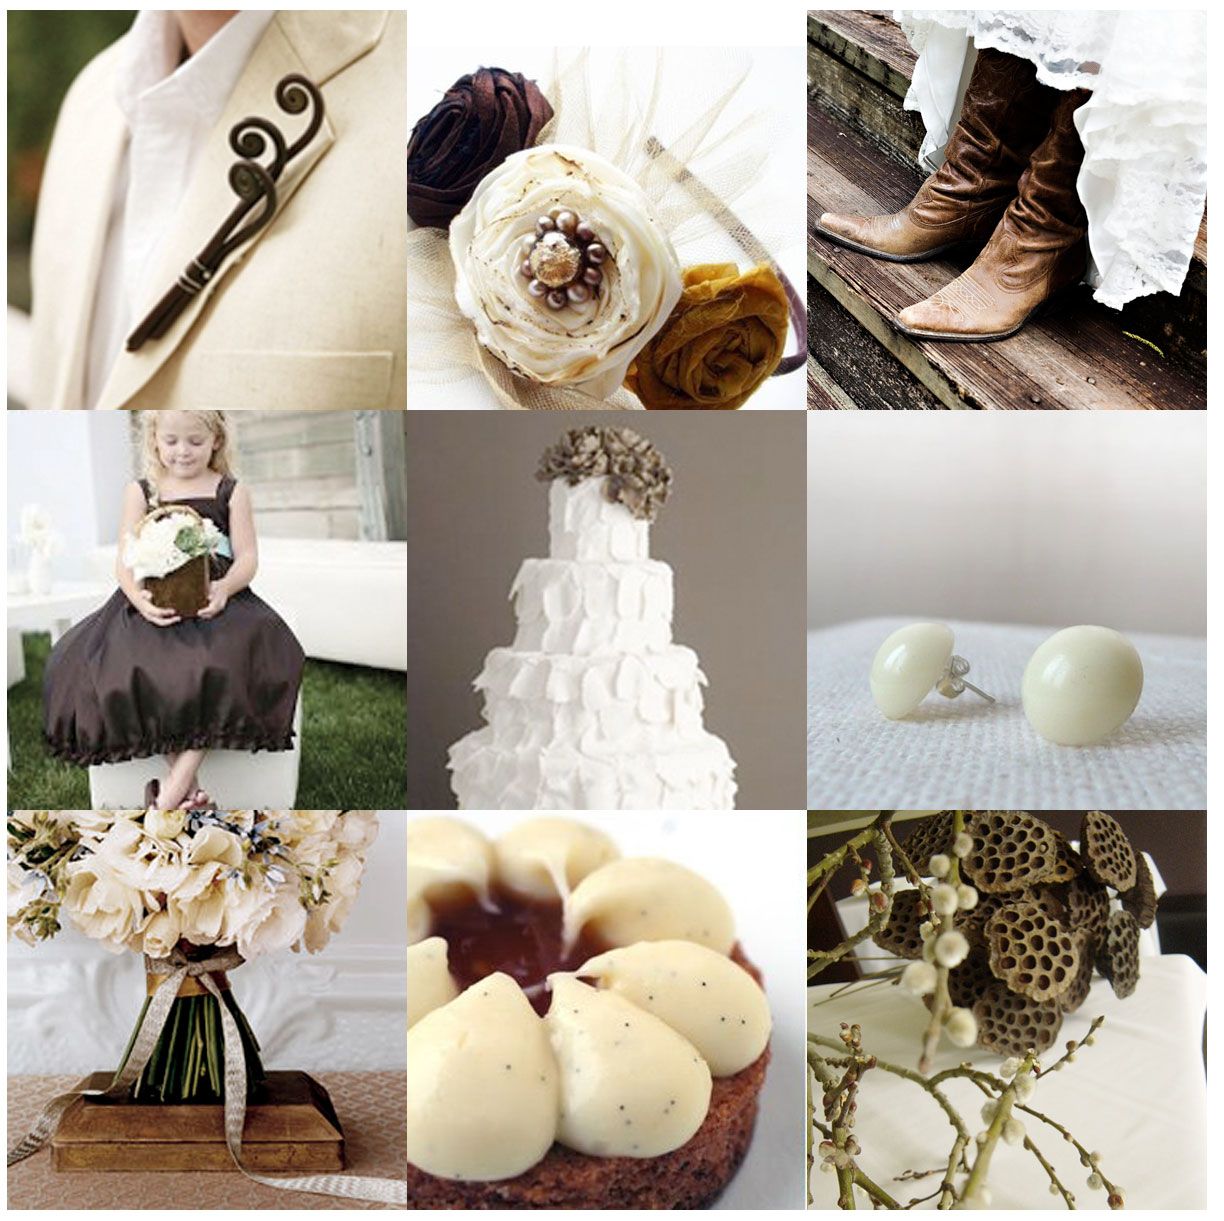 Wedding Blog Inspiration: Vanilla Bean